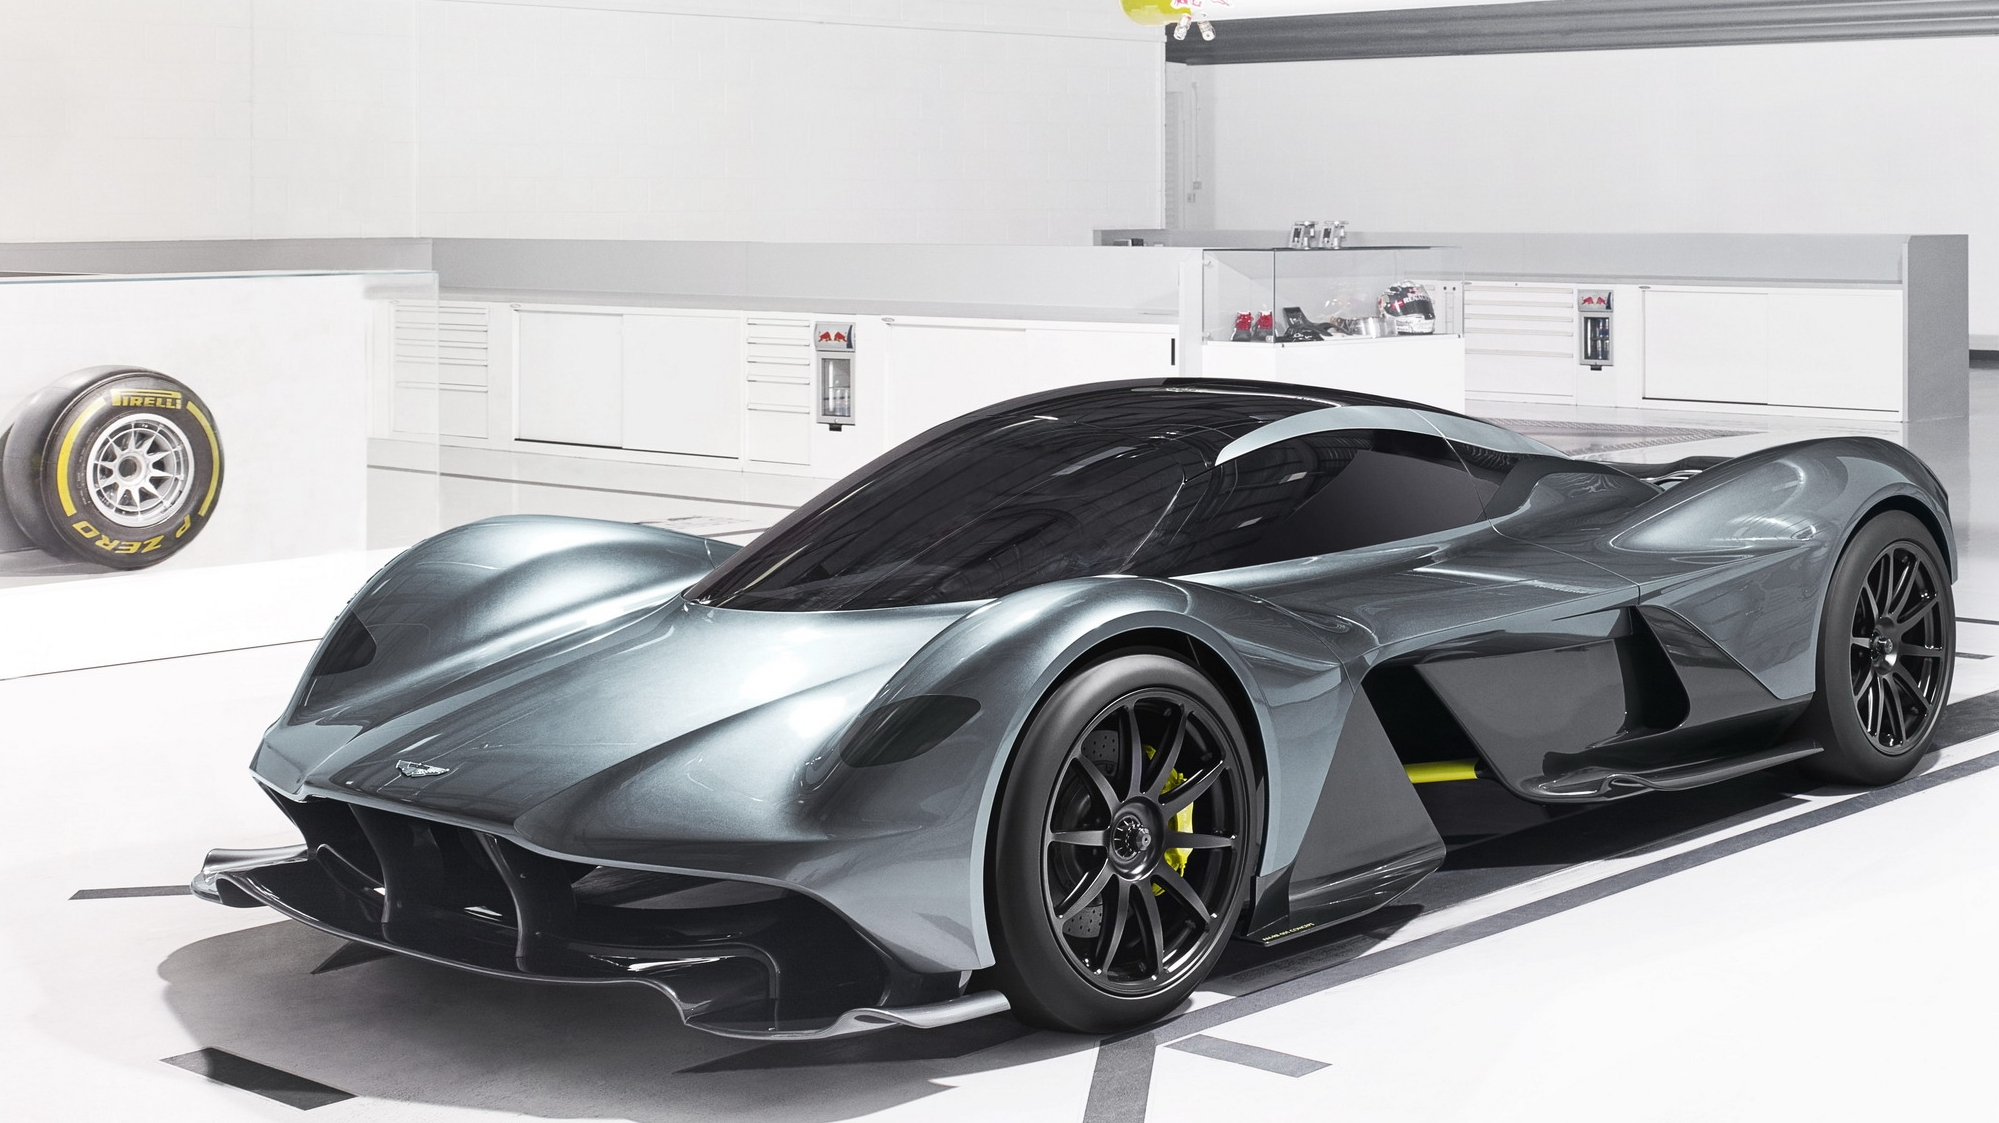 the aston martin am-rb 001 can reportedly hit 200 mph in just 10